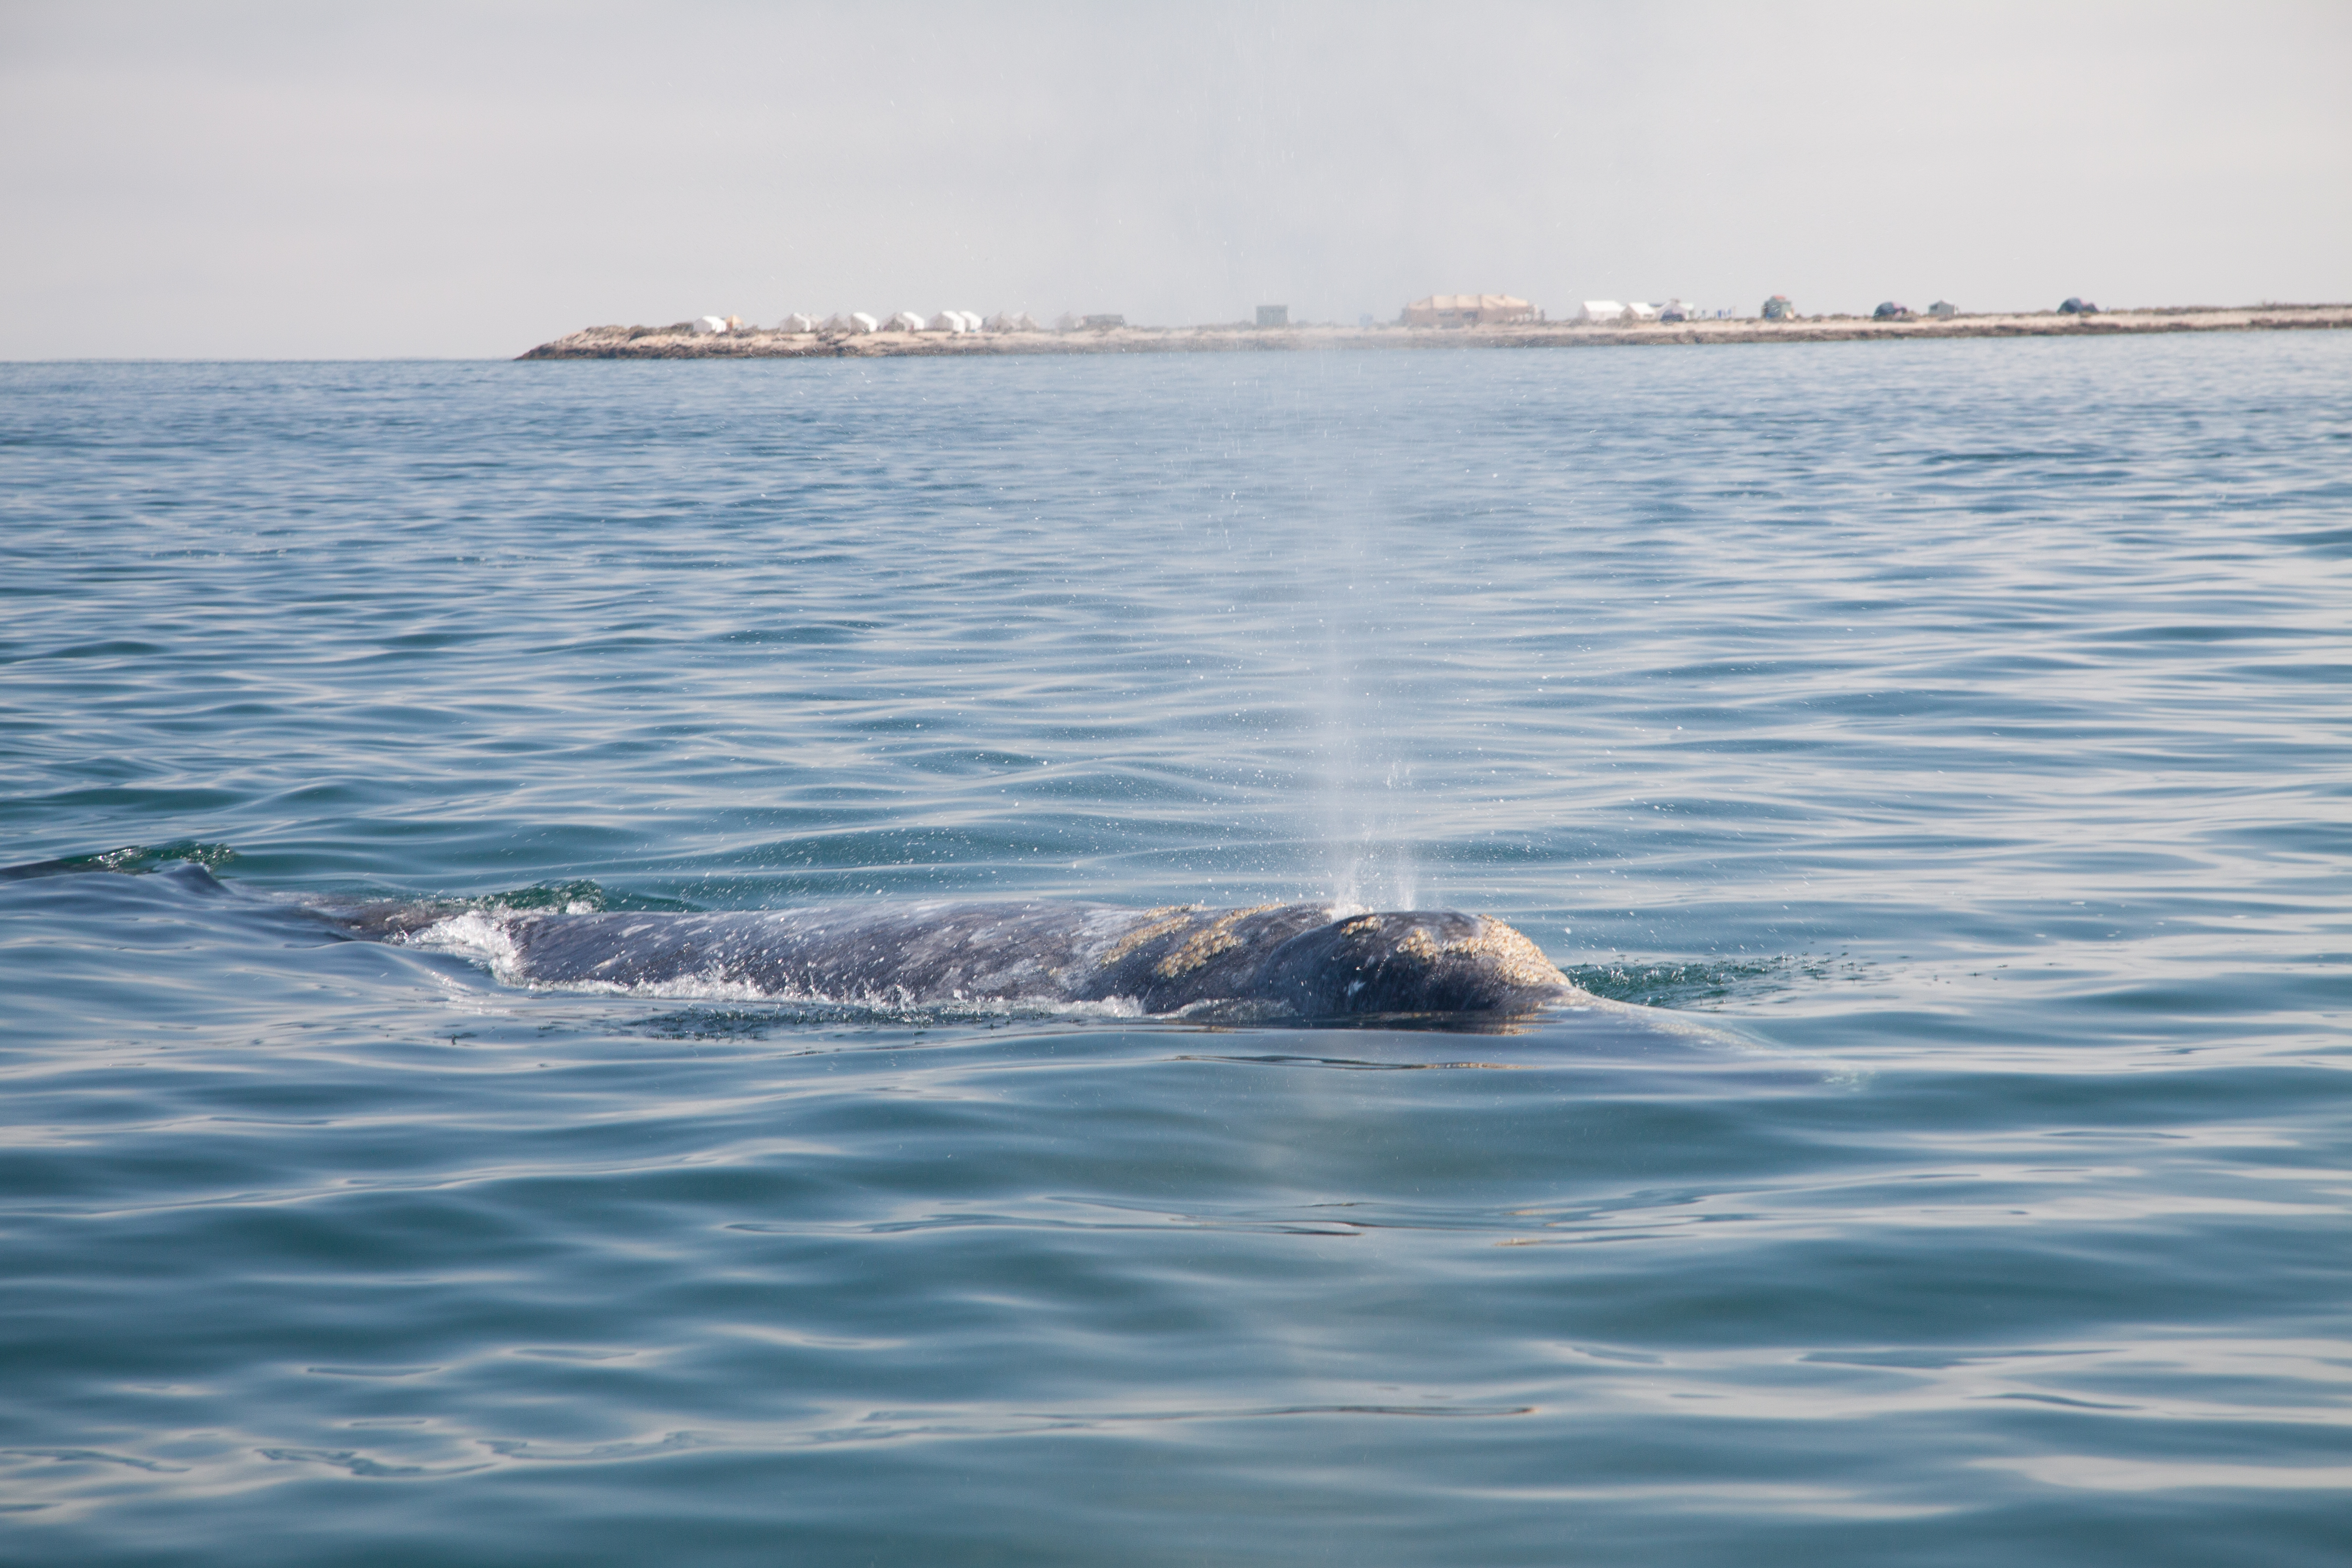 Gray Whale spraying water from blow hole